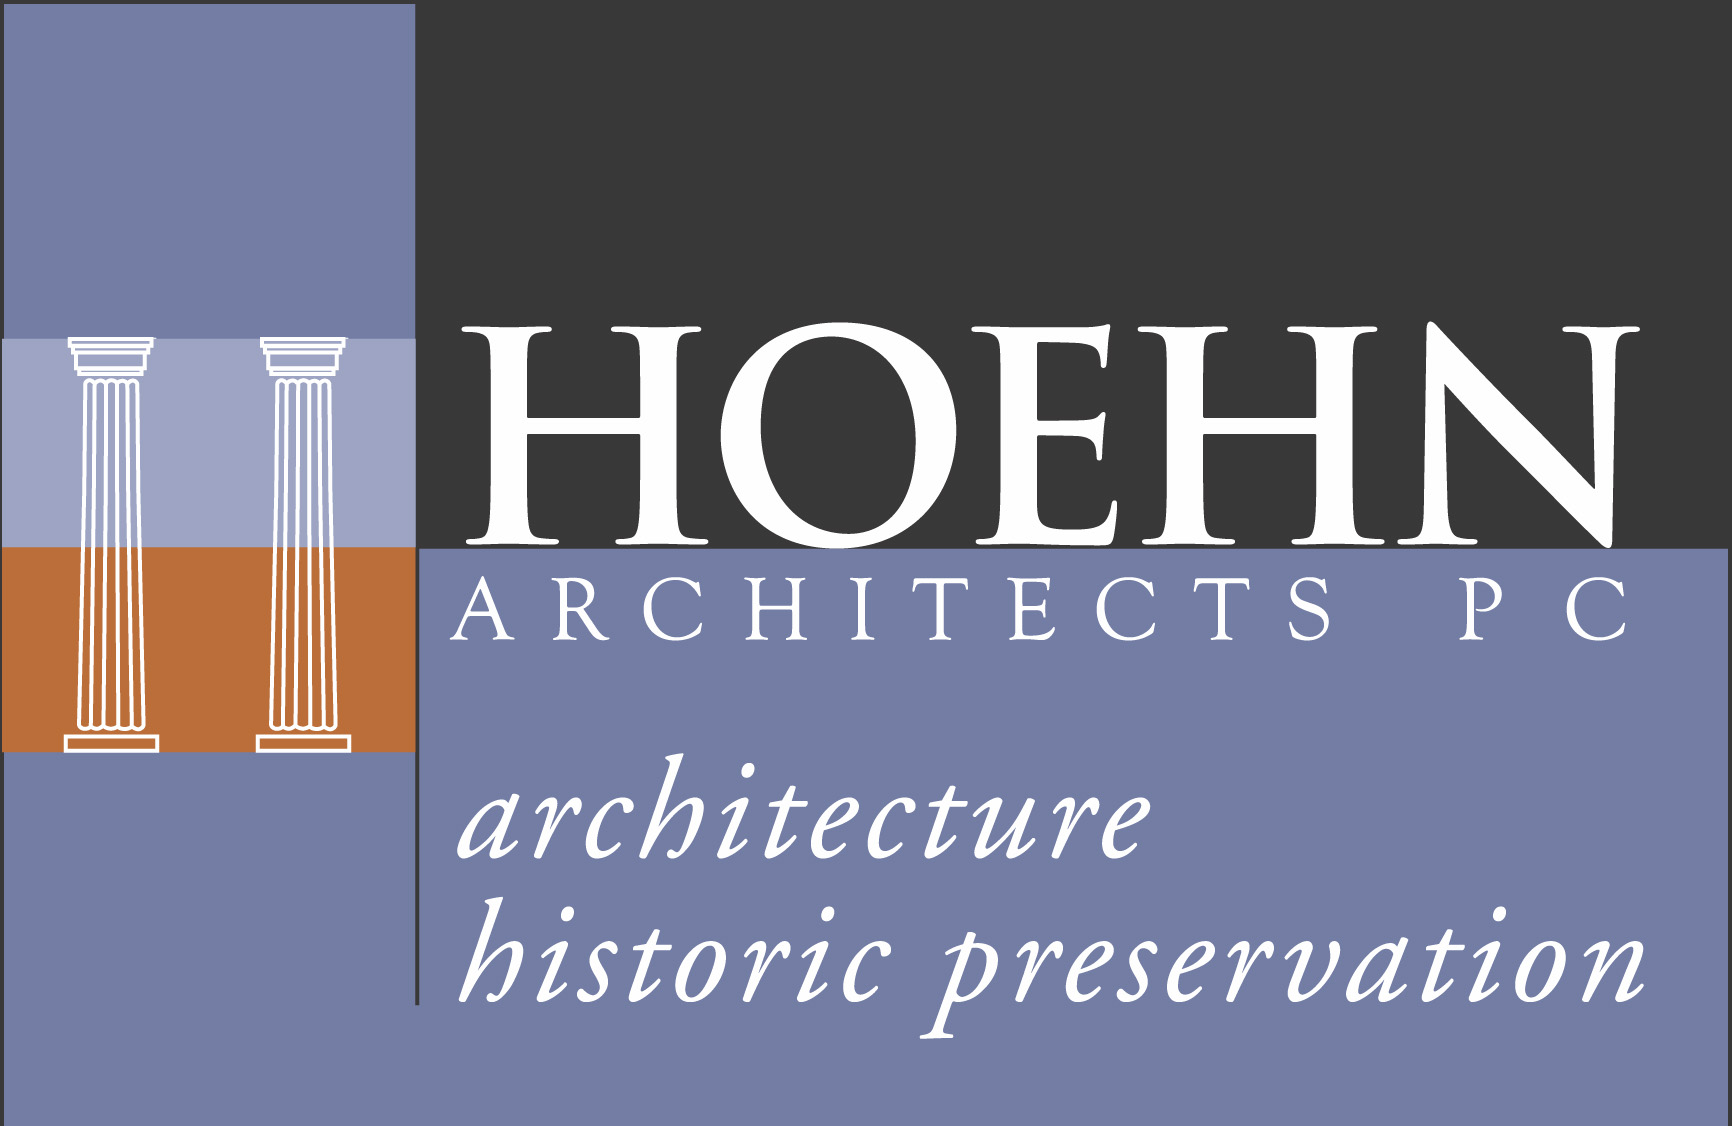 Hoehn Architects PC